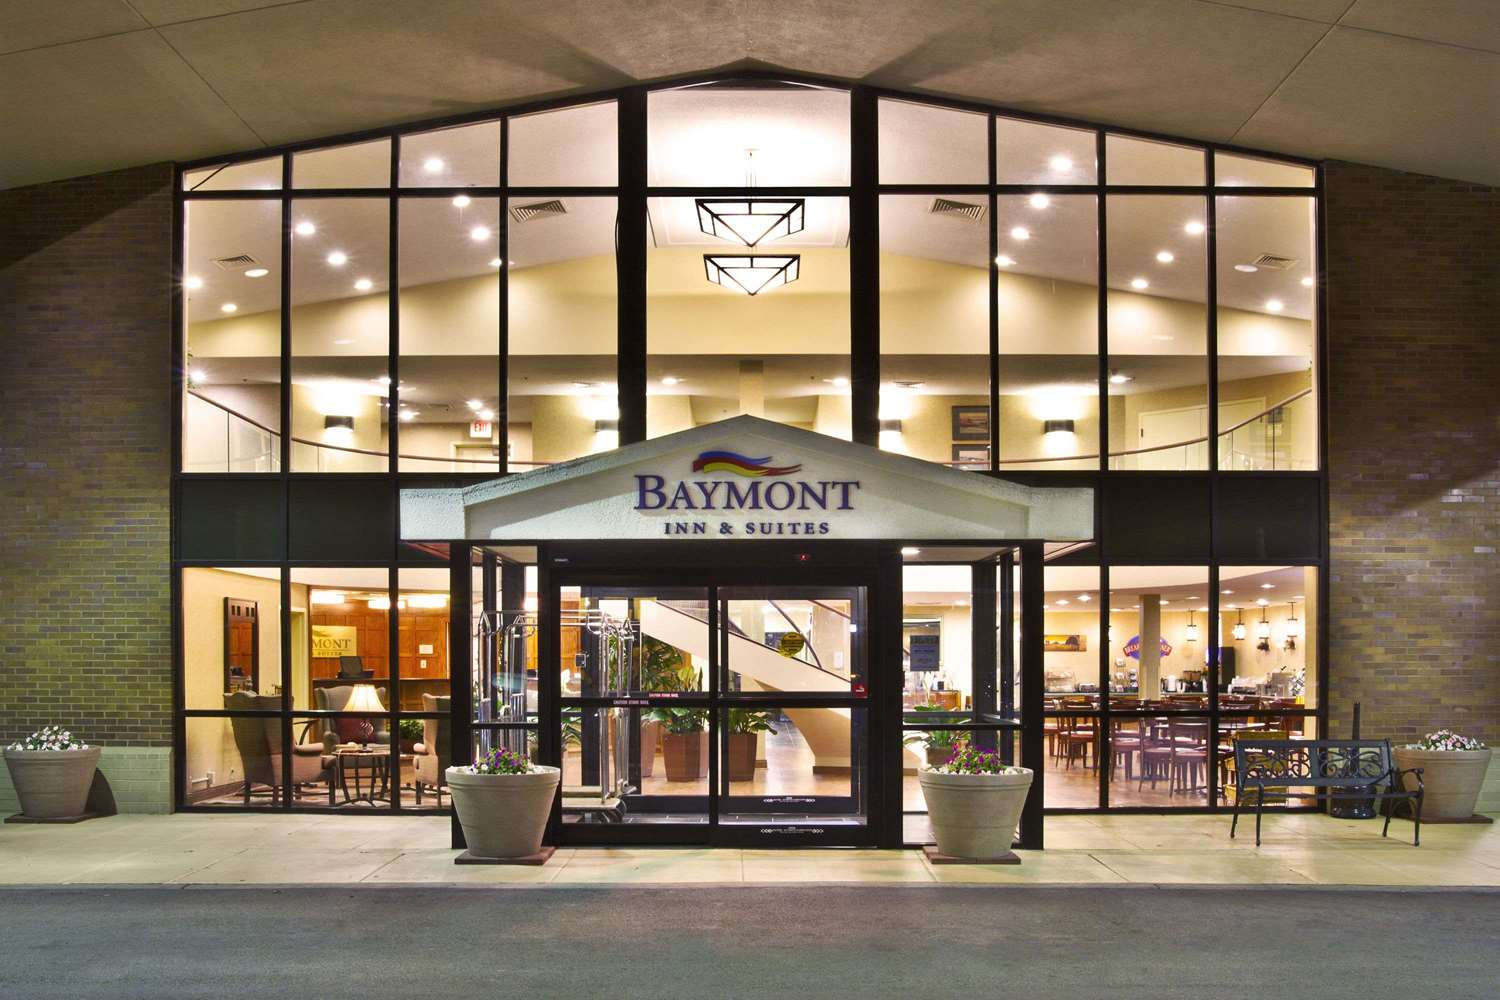 Exterior view - Baymont Inn & Suites Cedar Bluff Knoxville